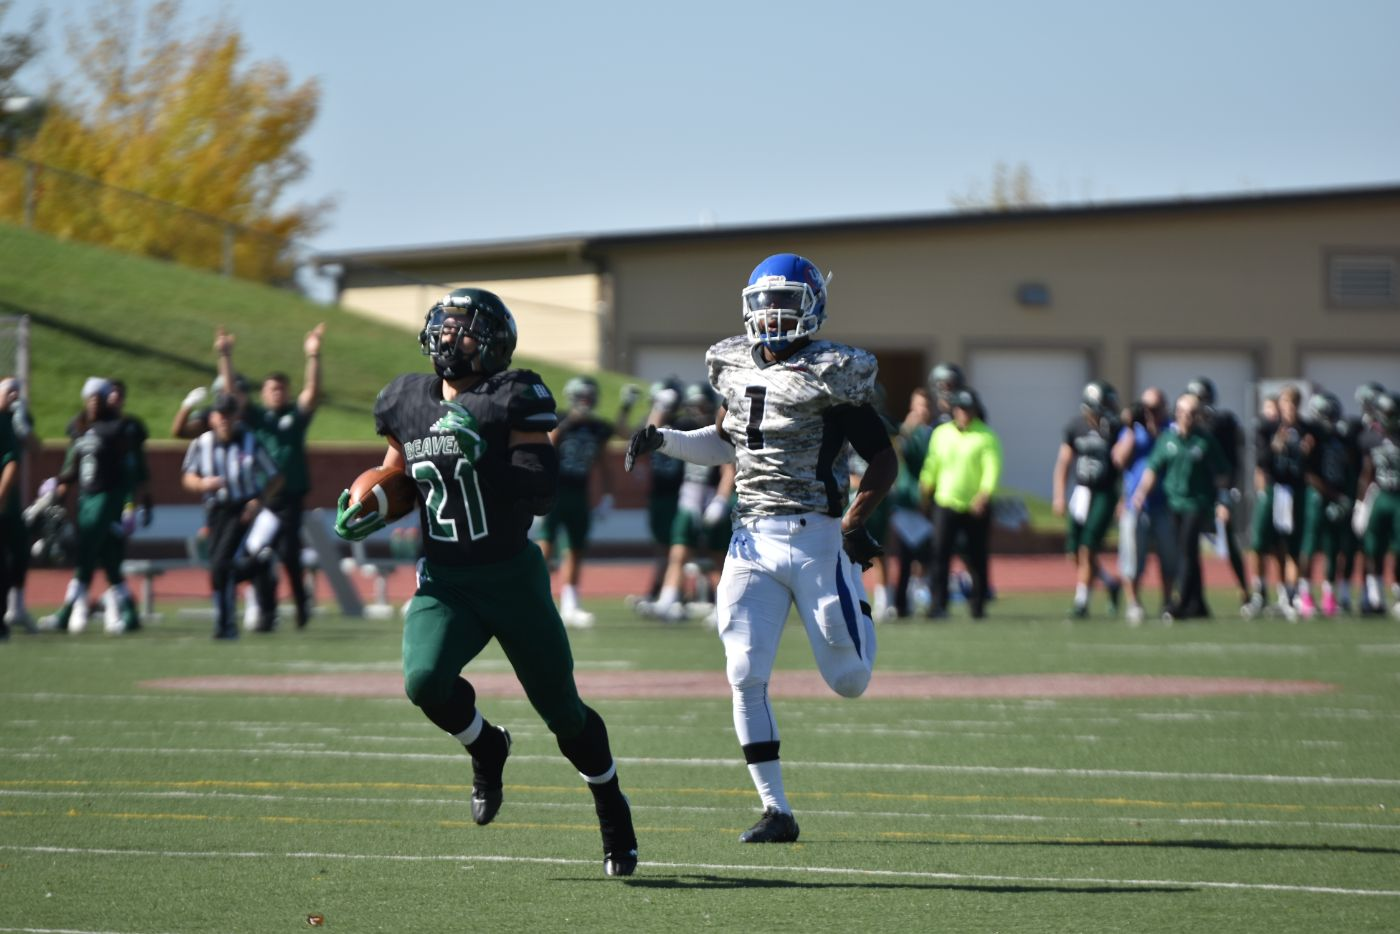 BSU football rushes for school record 480 yards en route to 52-3 win over U-Mary